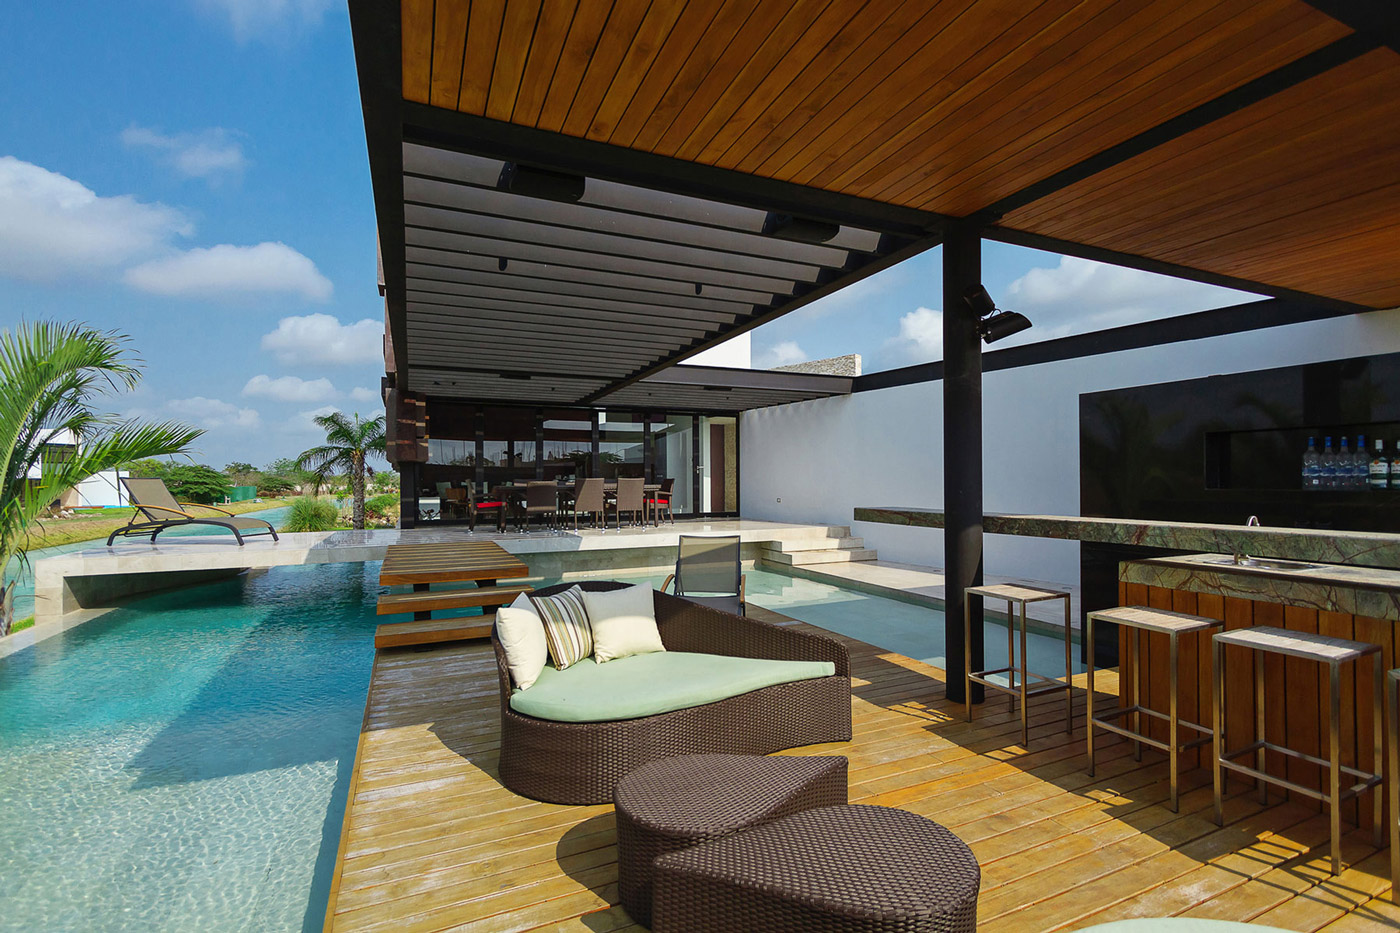 Outdoor Bar, Furniture, Wooden Deck, Bridge Over the River, Pool, Contemporary Residence in Merida, Yucatan